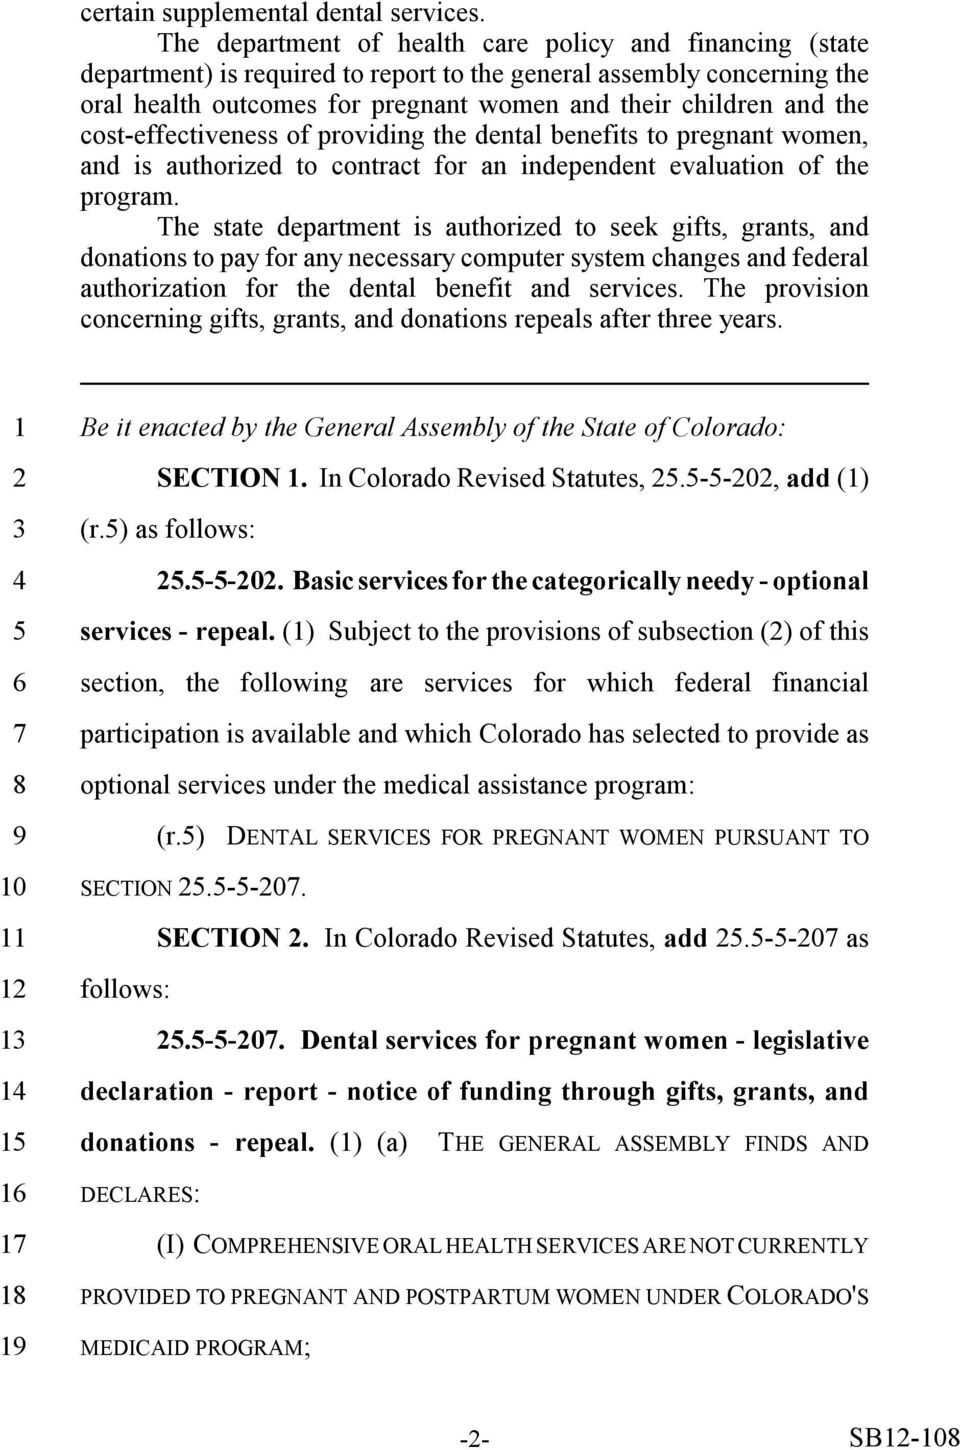 cost-effectiveness of providing the dental benefits to pregnant women, and is authorized to contract for an independent evaluation of the program.